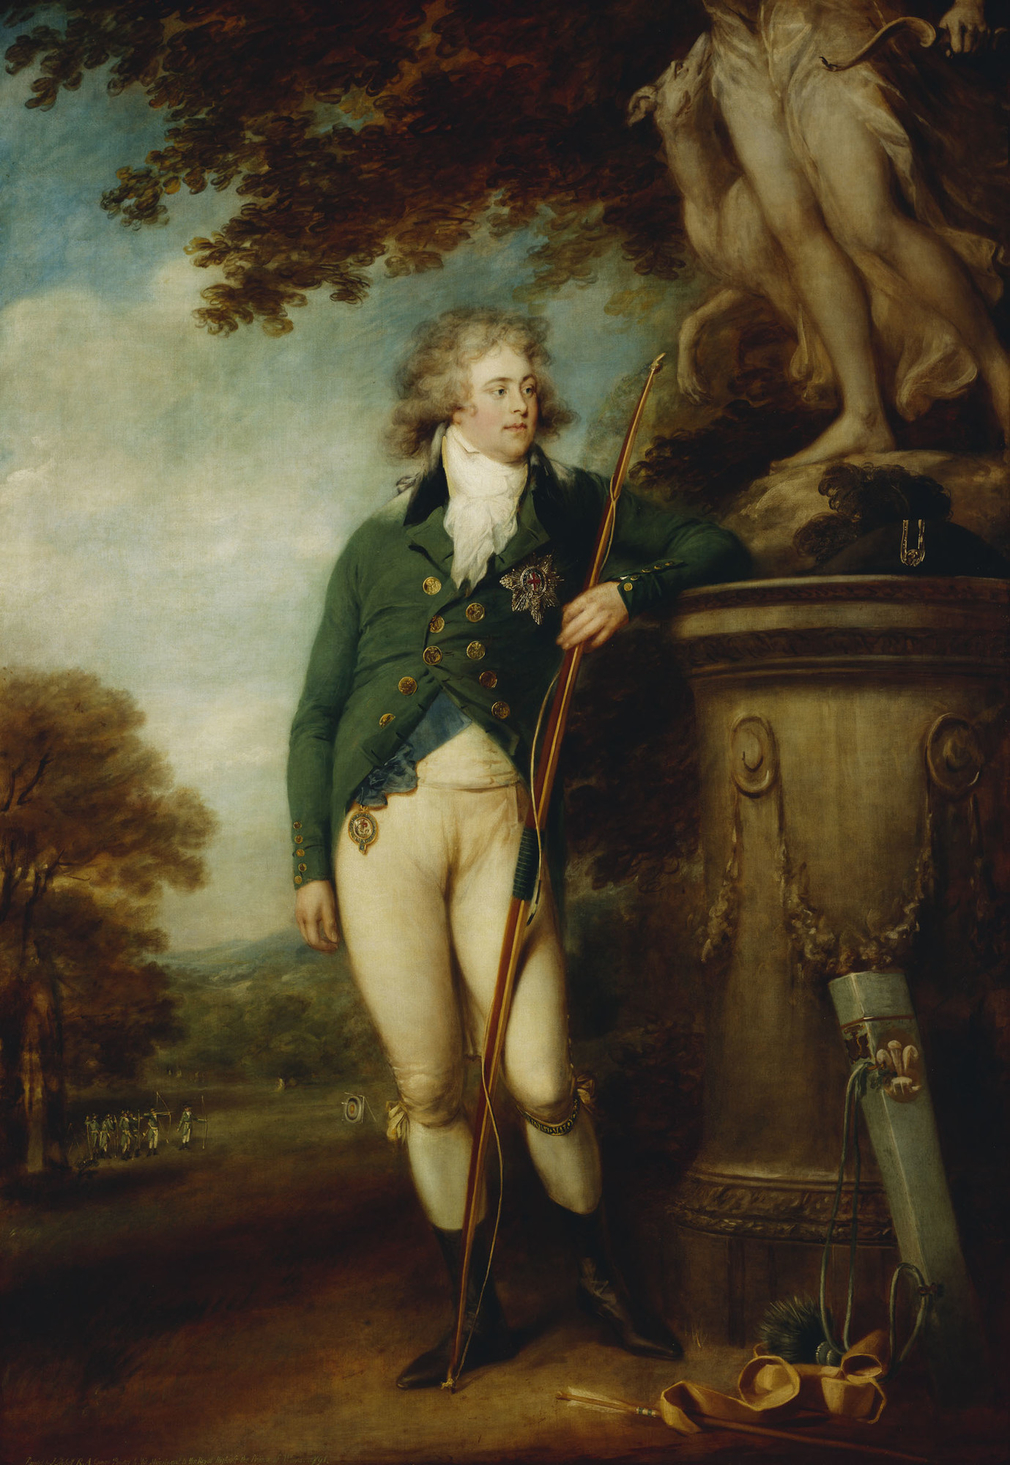 The Prince of Wales was interested in his self-image. This flattering, athletic portrait was commissioned by him as a prize for a meeting of the Royal Kentish Bowmen. As president of the society, he is dressed in their green uniform. He leans on the pedes